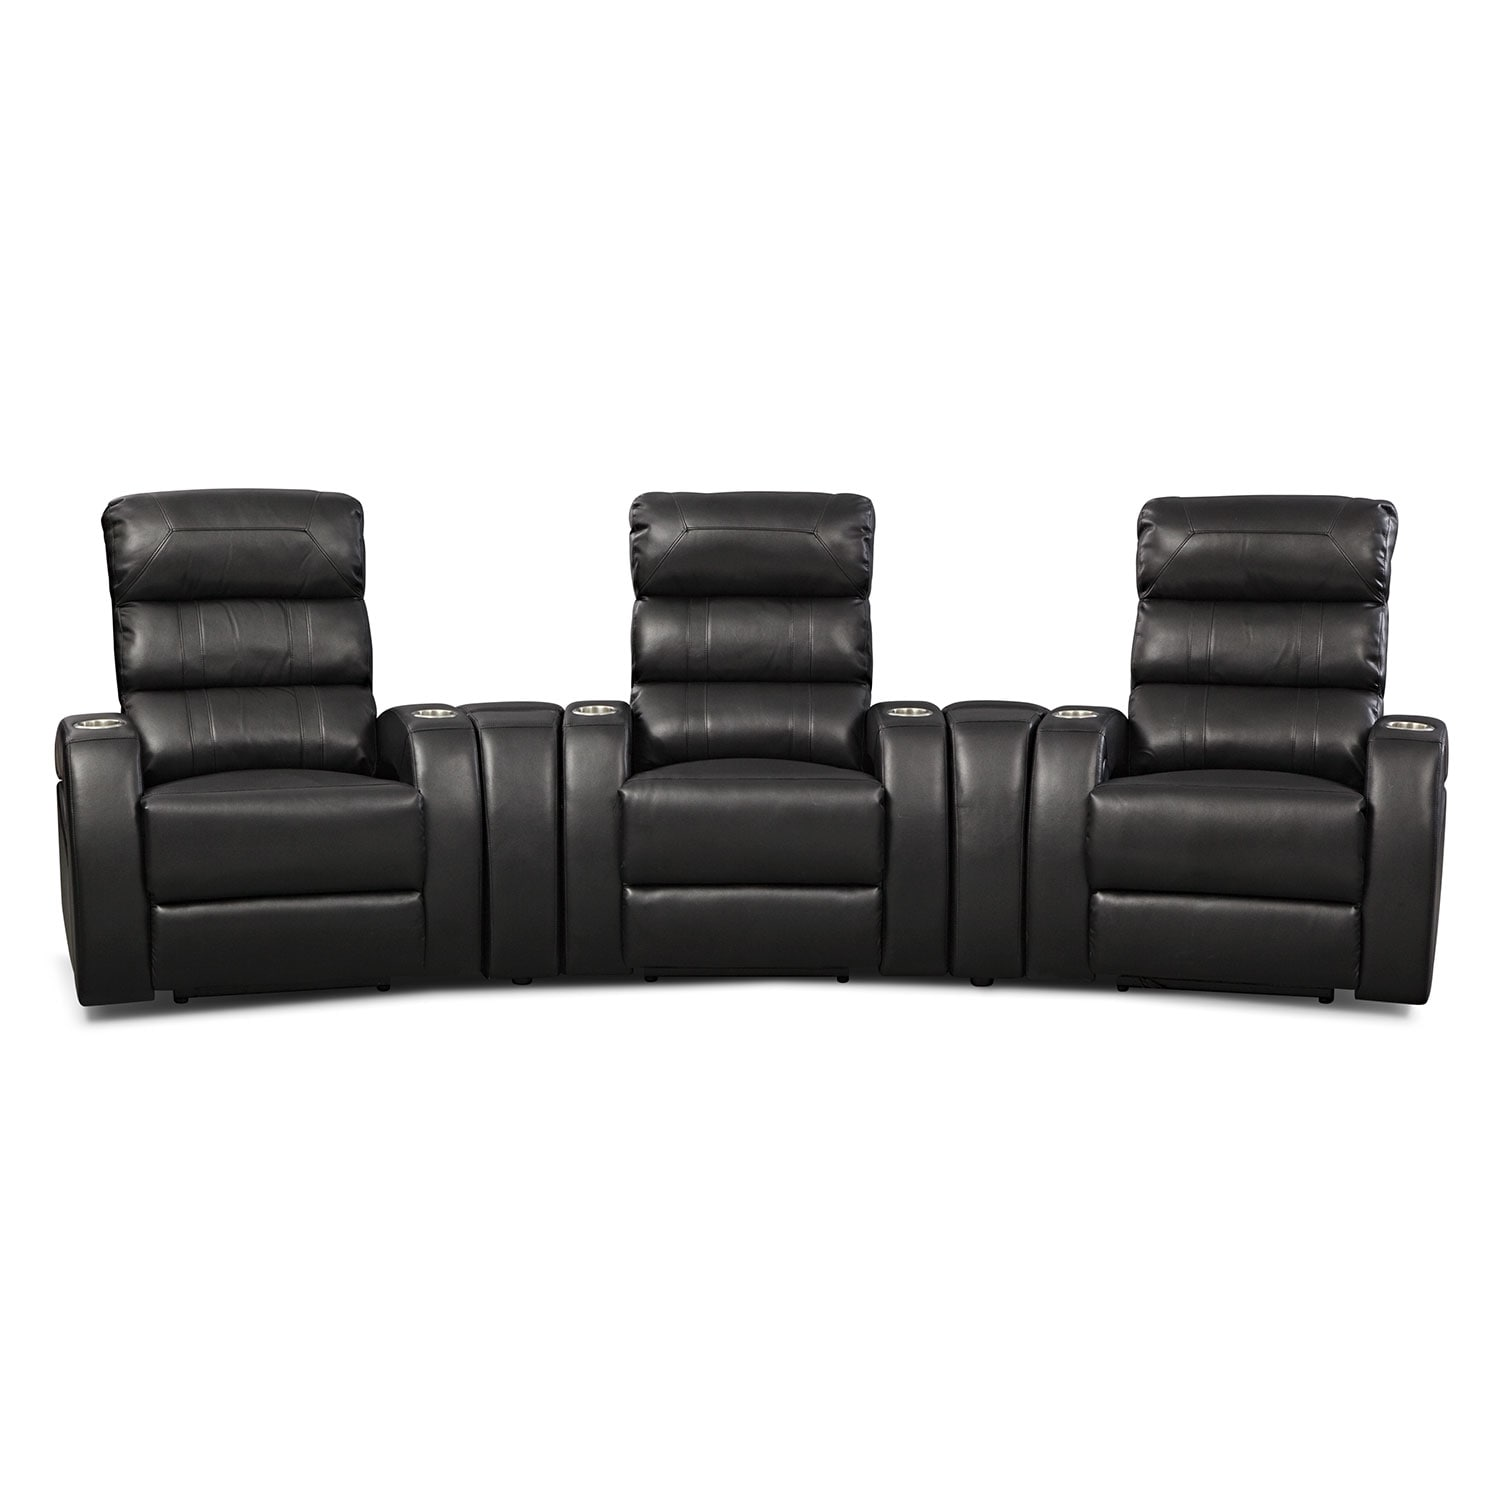 Gemini 5 Pc. Power Home Theater Sectional